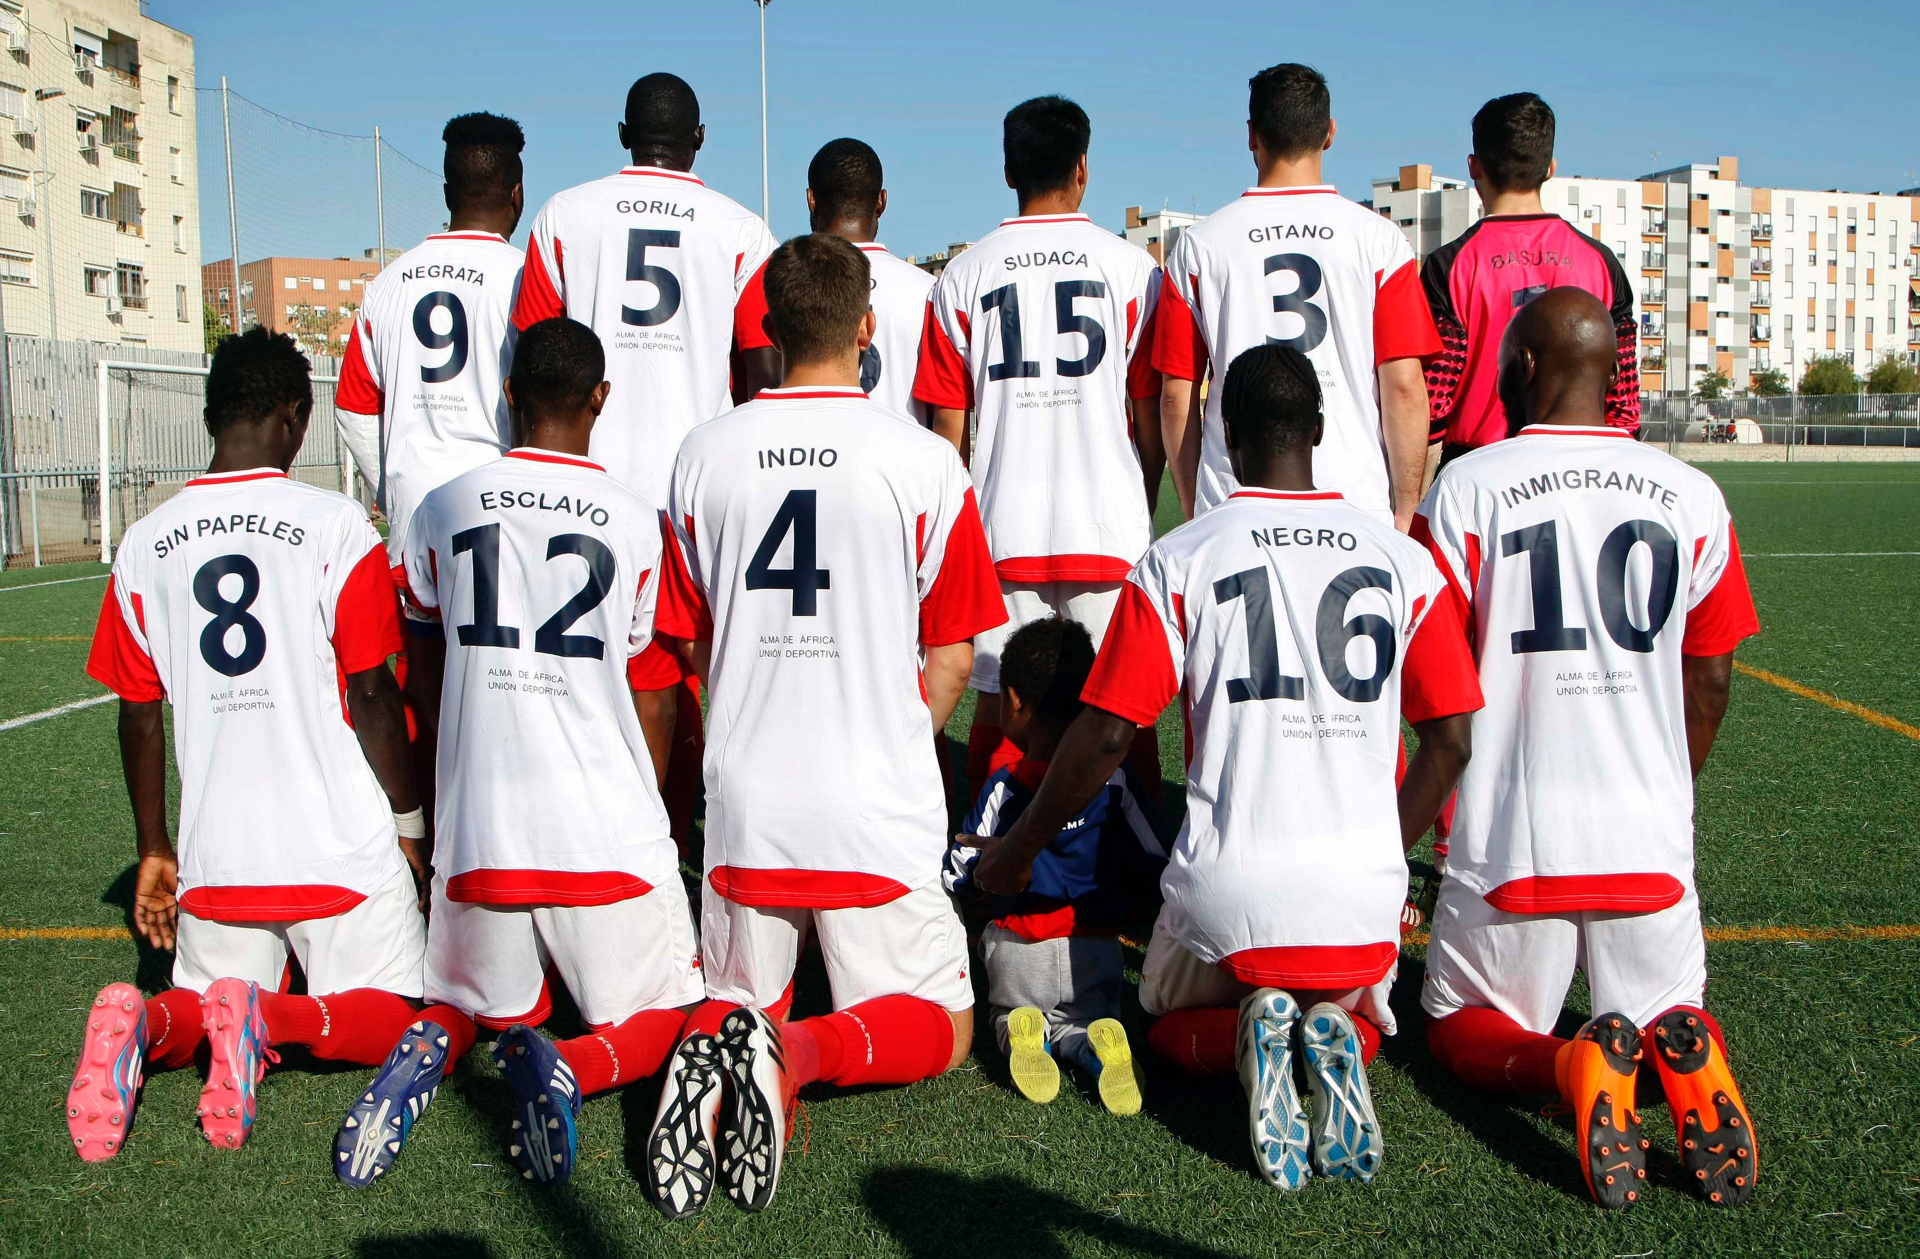 No escape from racism: migrant team in Spain dons insults